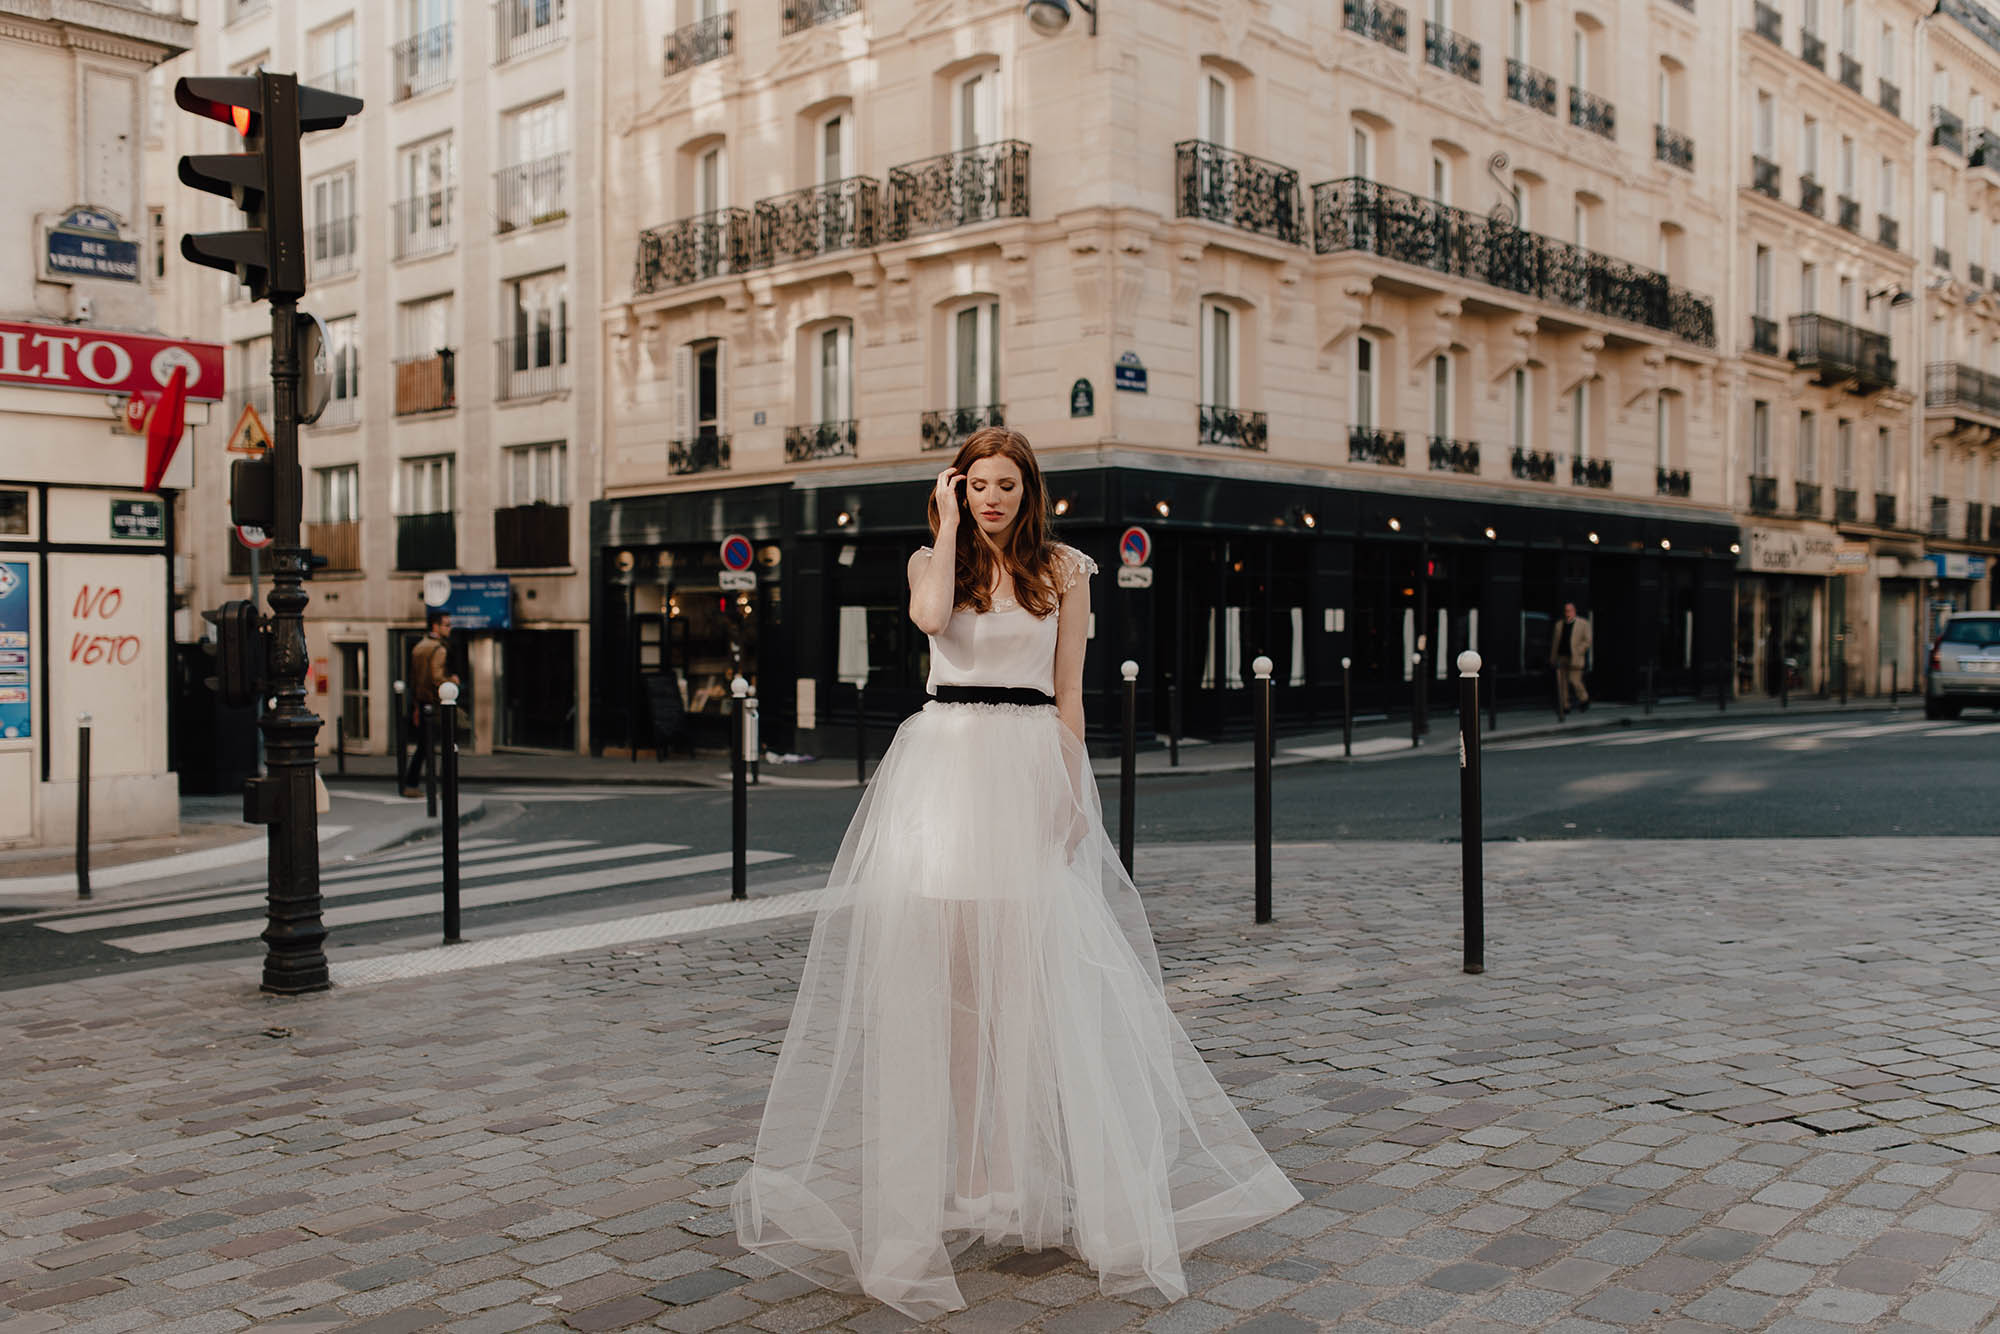 youmademydayphotography-destination-wedding-photographer-david-purves-boheme-rock-paris-web-194